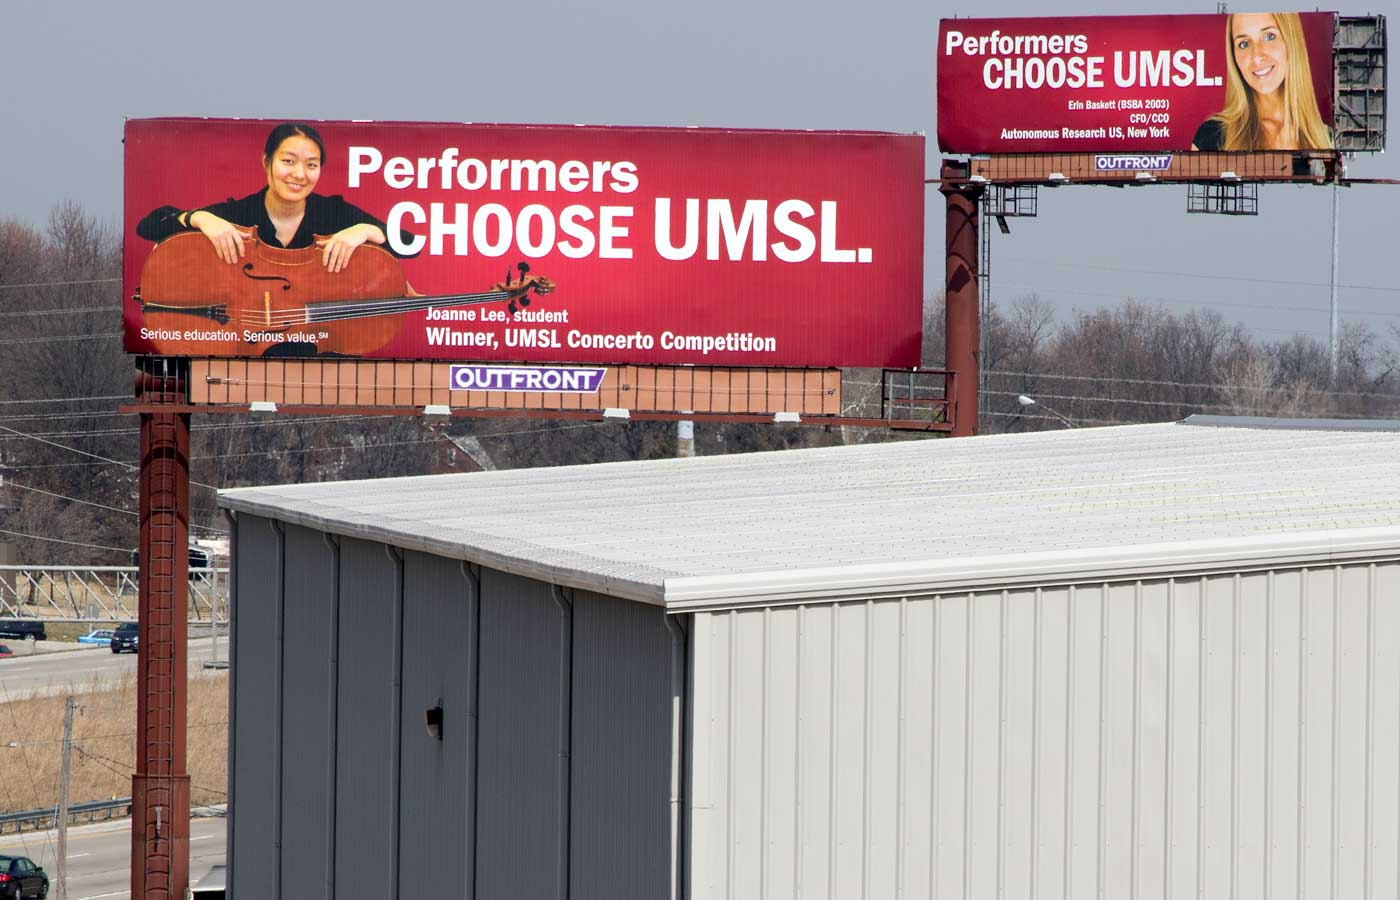 Innovators, leaders, champions, the strong, entrepreneurs, performers choose UMSL